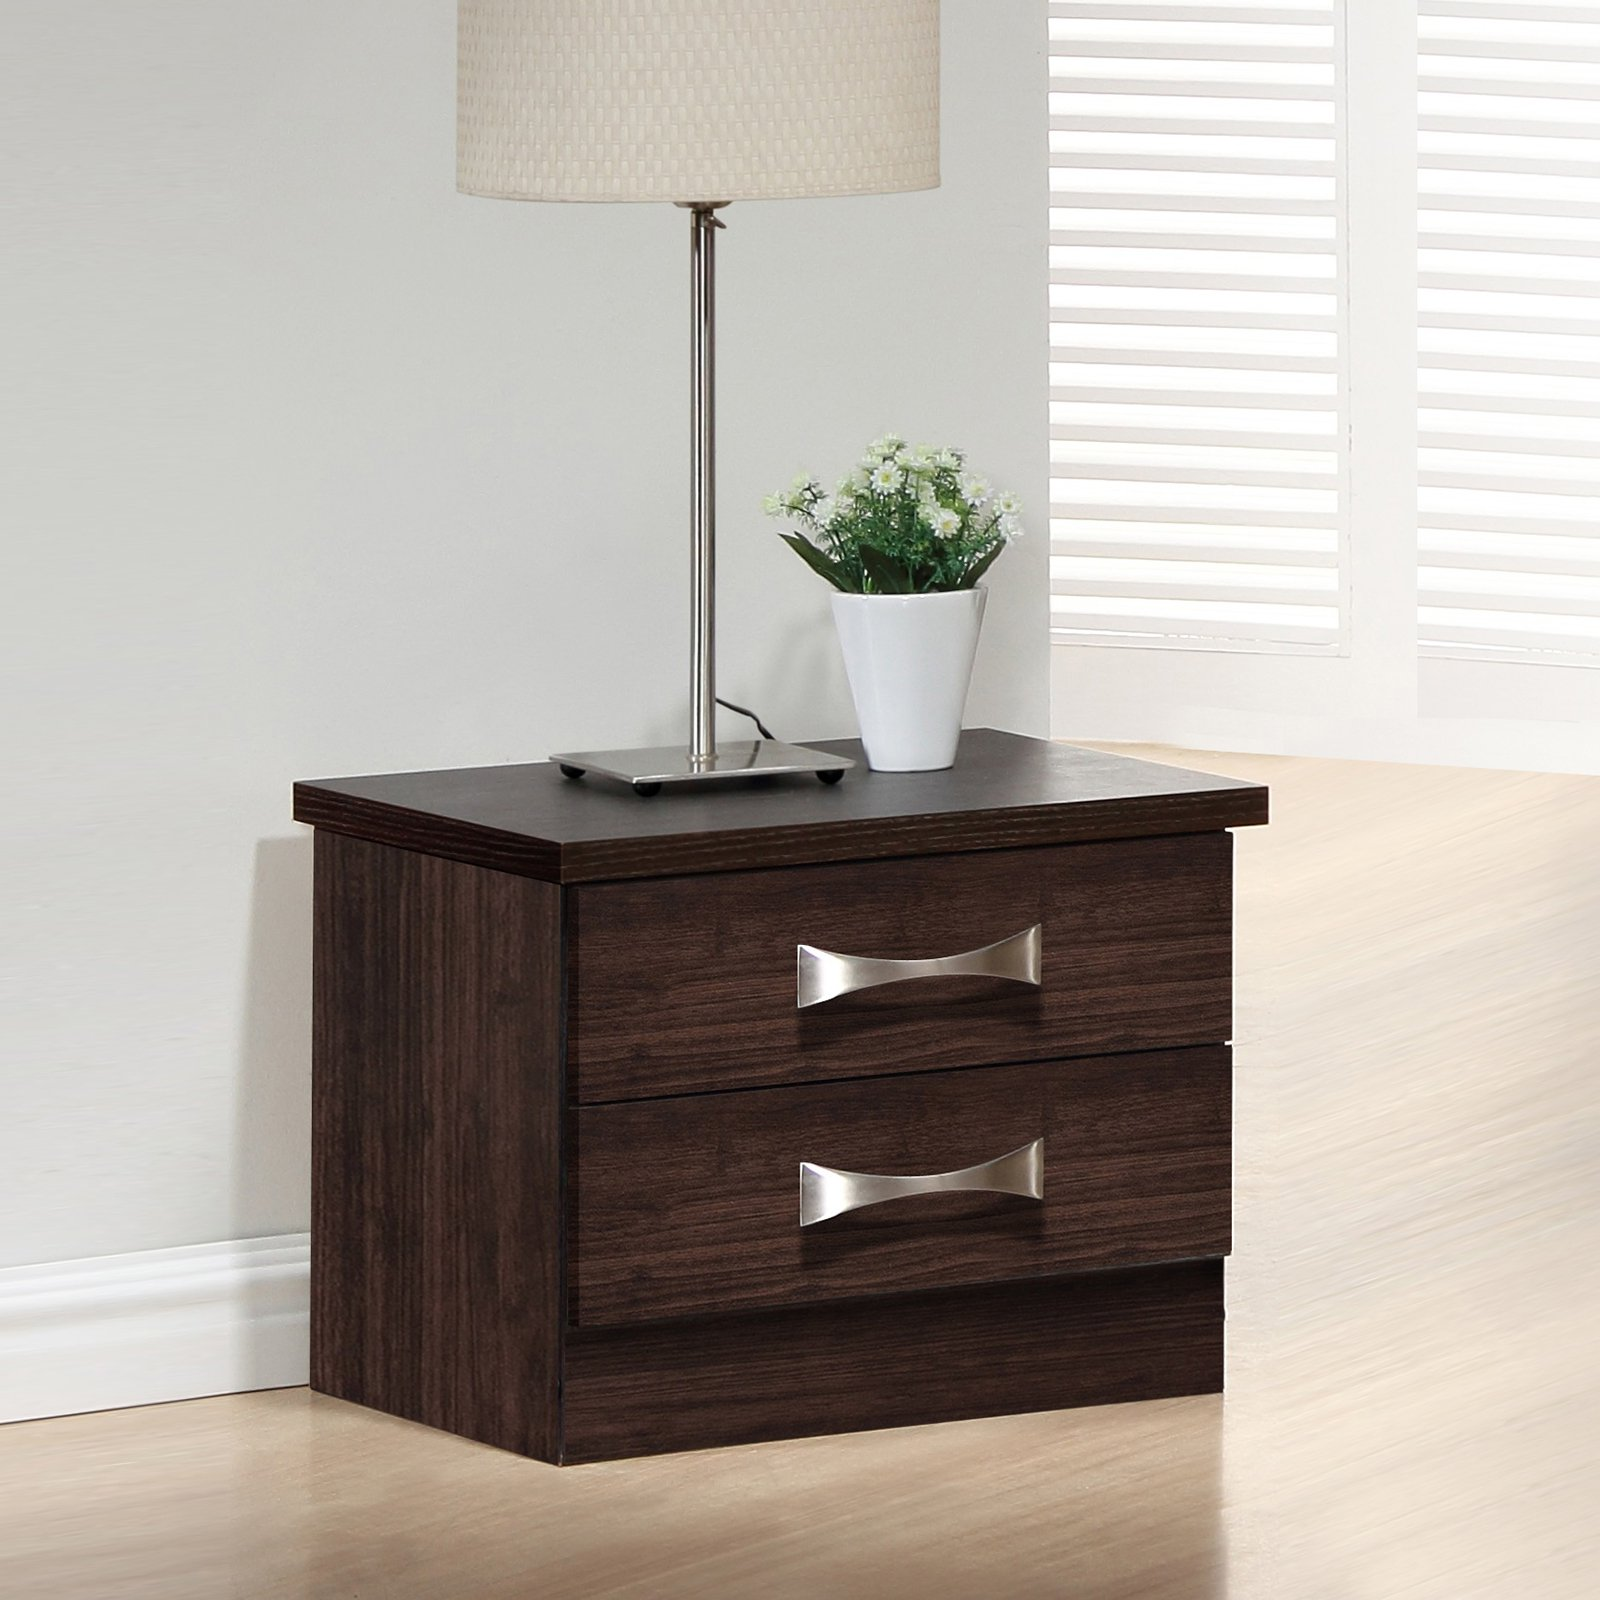 Baxton Studio Colburn Modern and Contemporary 2-Drawer Dark Brown Finish Wood Storage Nightstand Bedside Table by Overstock